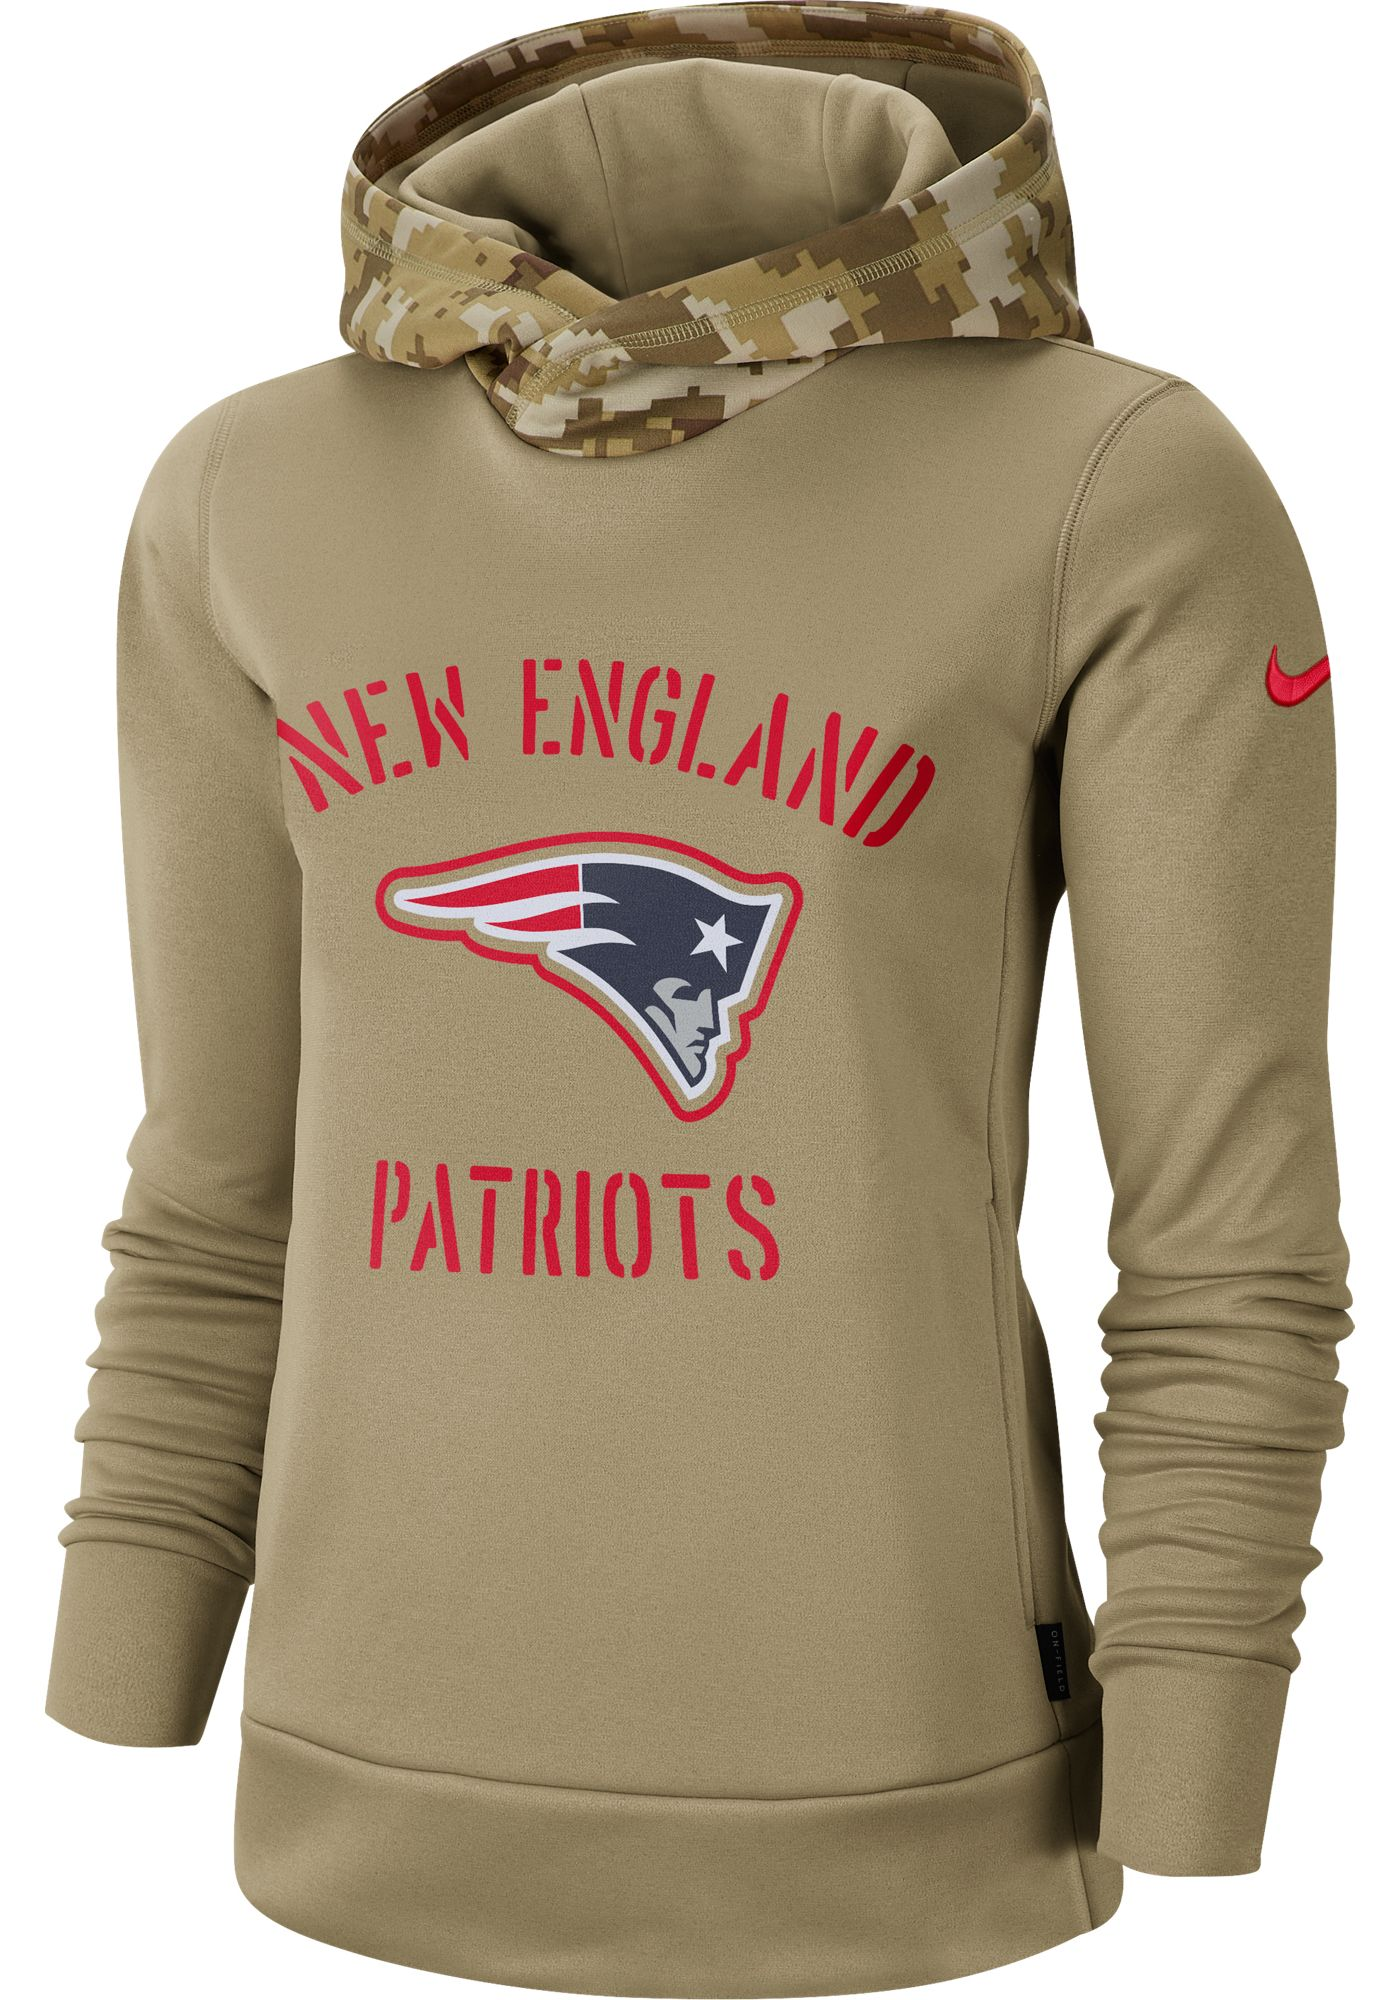 Nike Women's Salute to Service New England Patriots Therma-FIT Beige Camo Hoodie